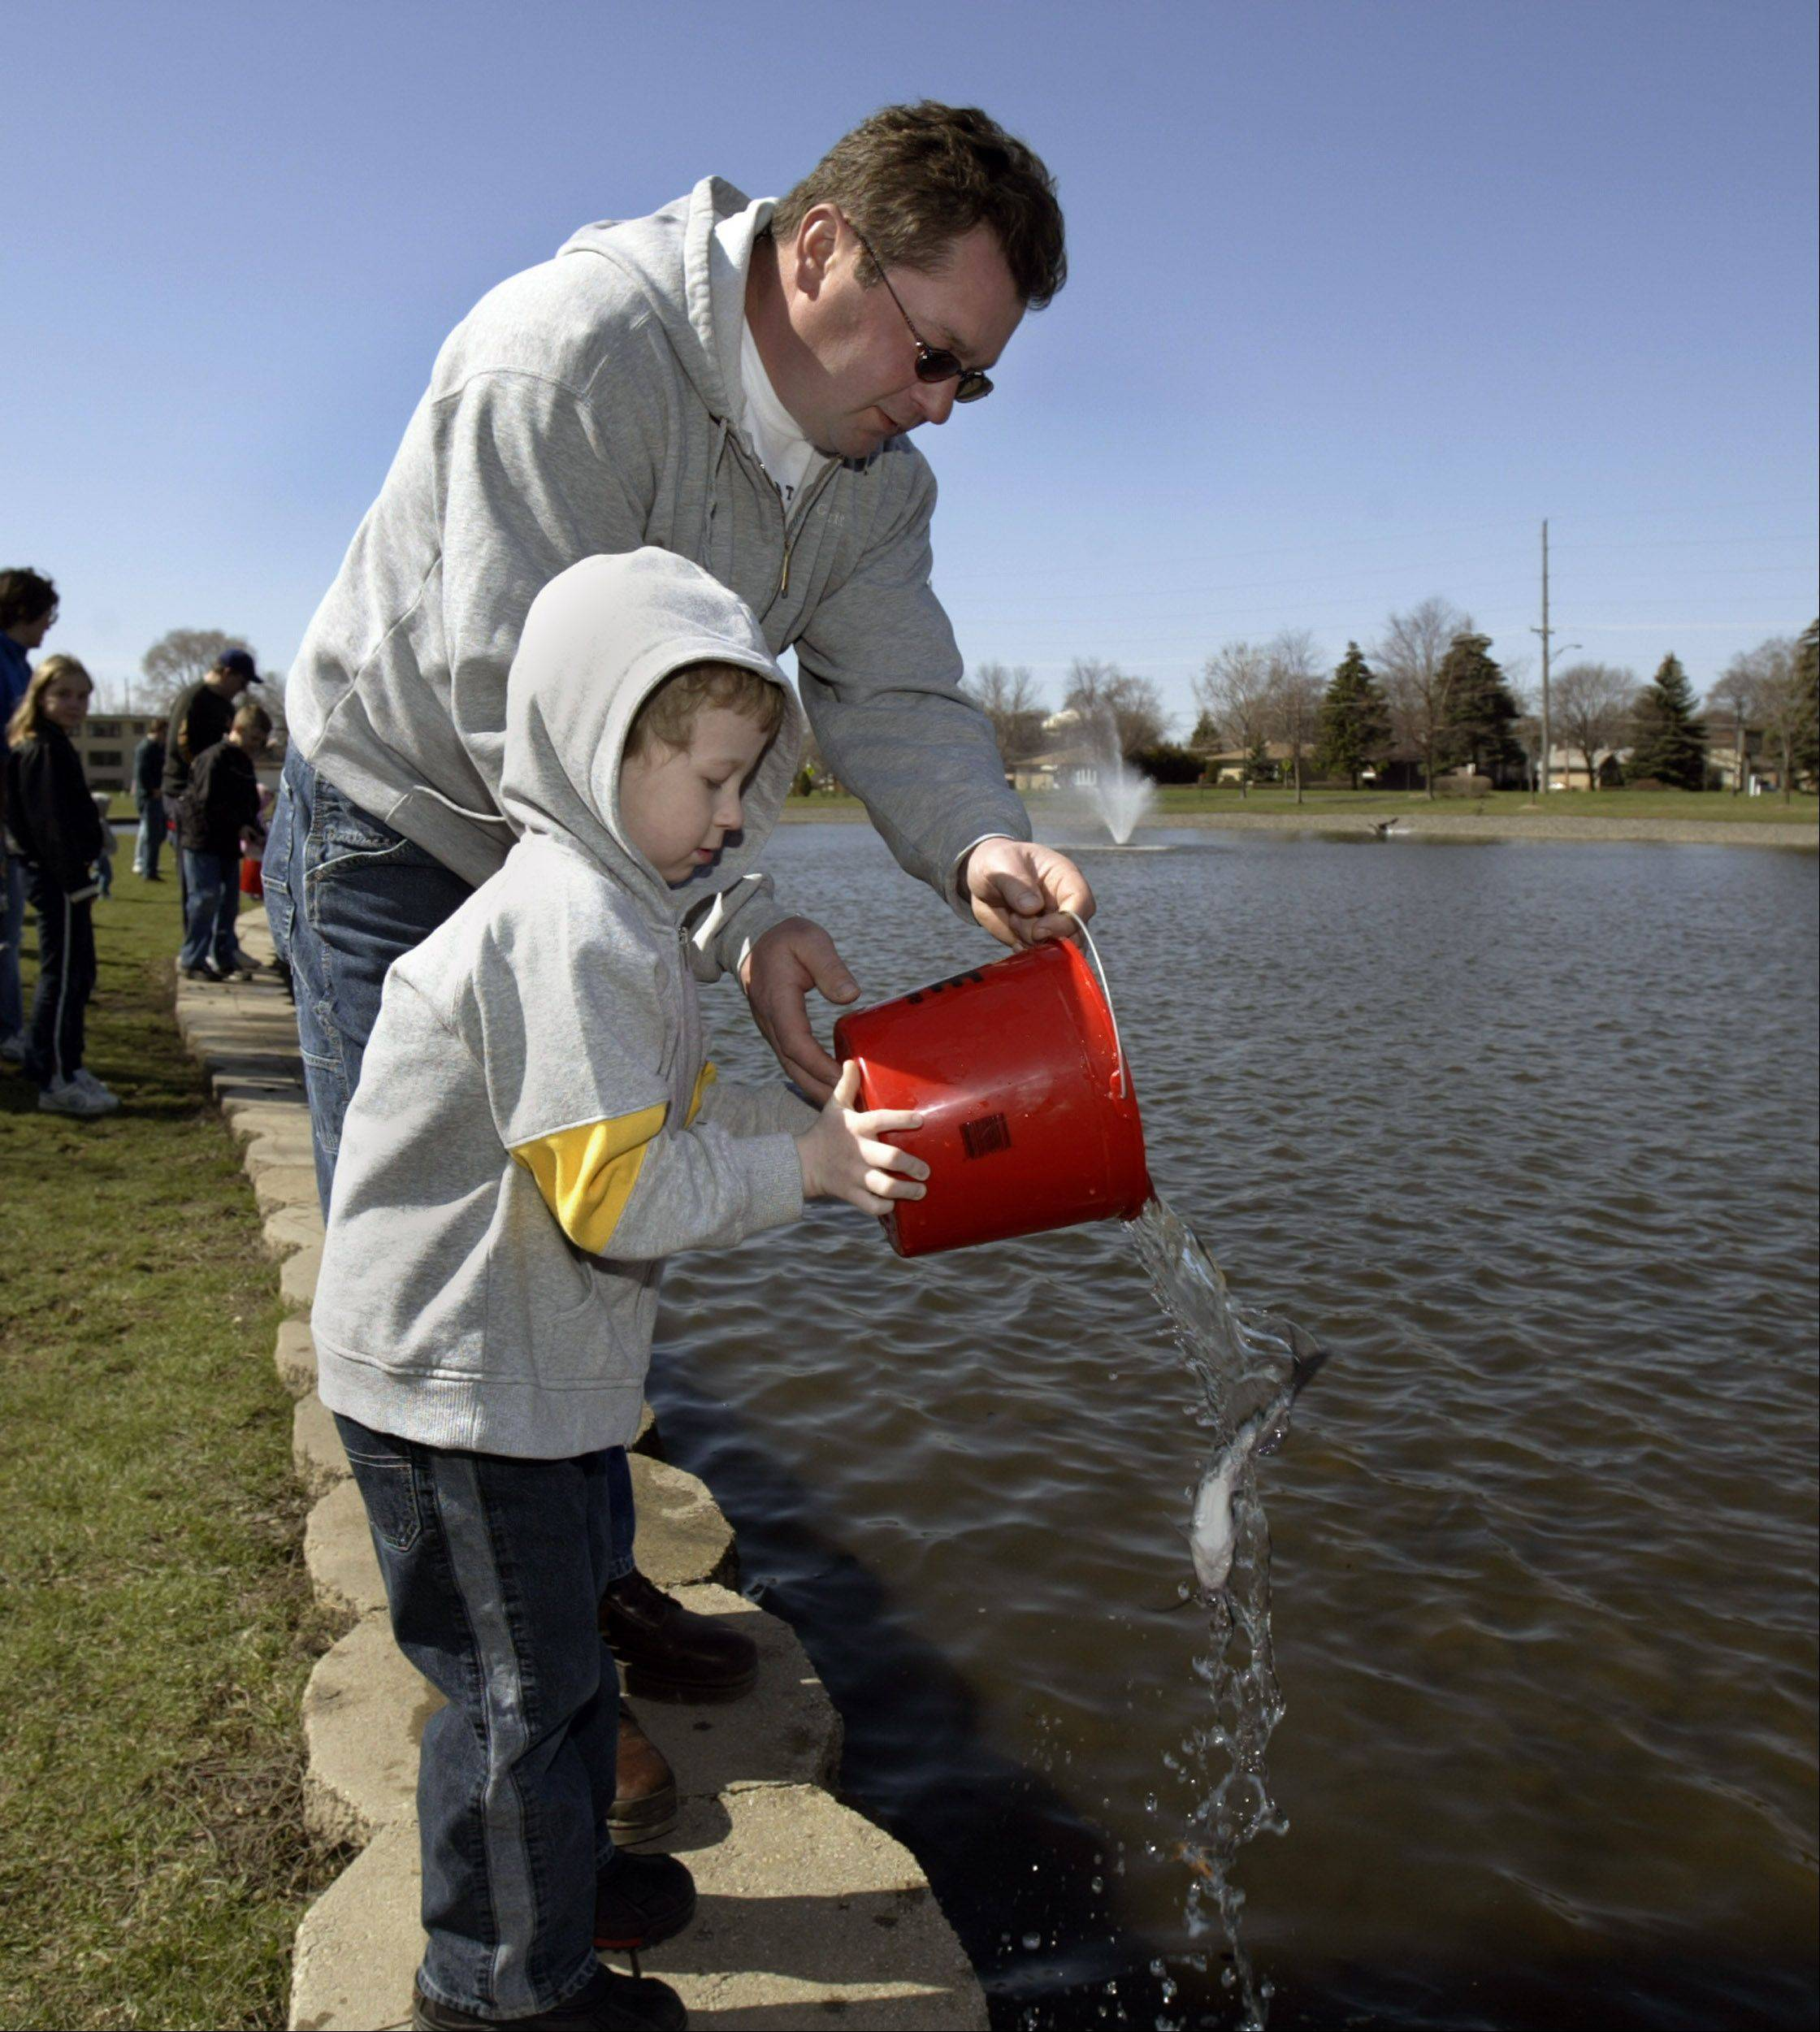 Families can help release minnows, catfish and more into Turner Pond in Roselle or Lakeview Pond in Bloomingdale as part of the annual fish stocking by the Roselle-Bloomingdale Rotary Club. The event also collects food donations for the Bloomingdale Township food pantry.